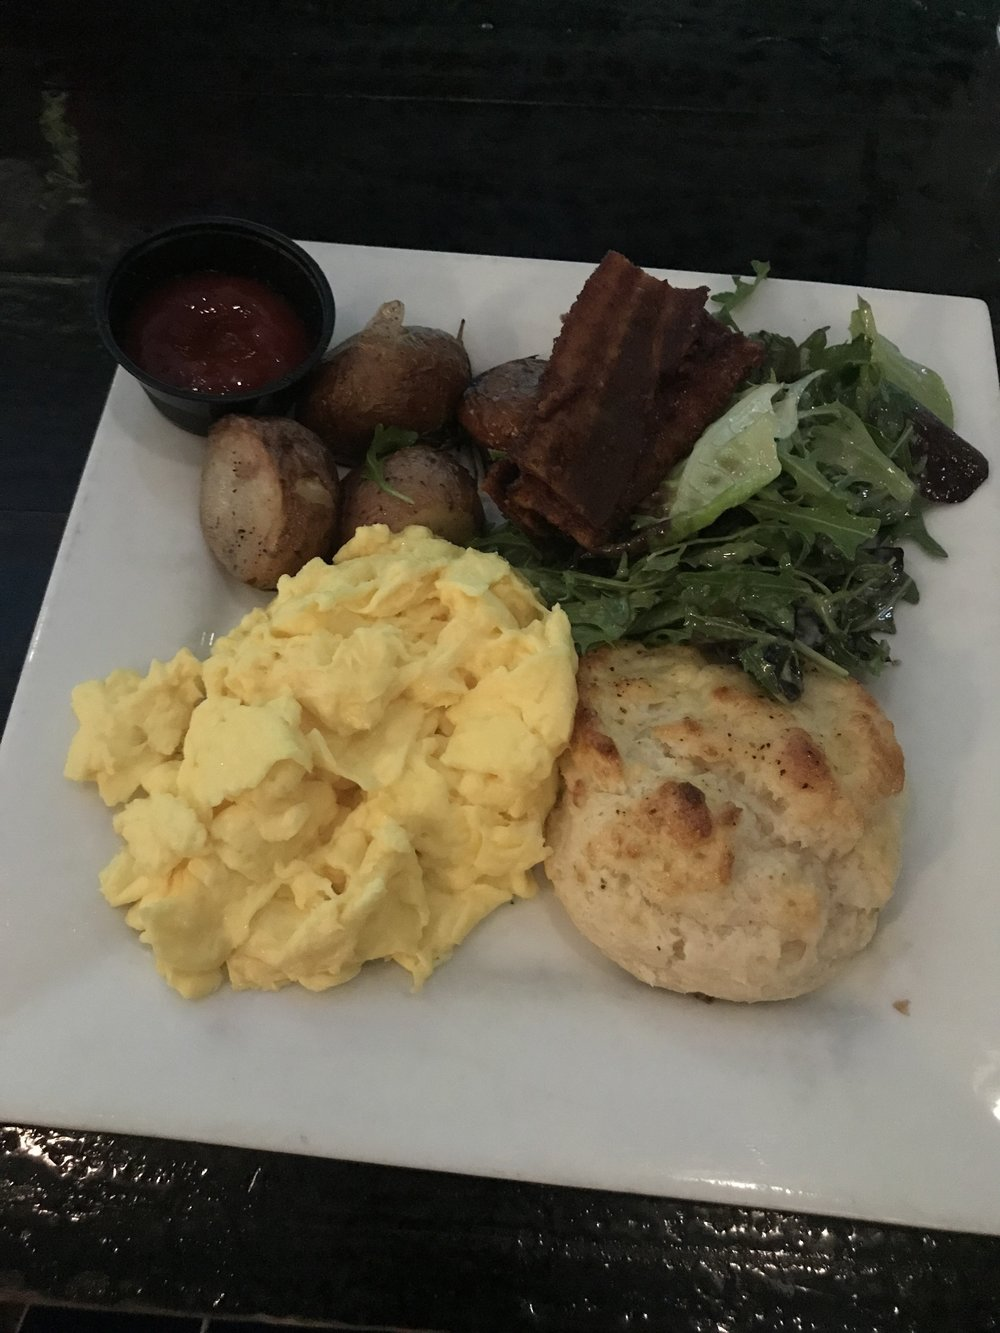 Scrambled Eggs with a side of Sassy Bacon - $18